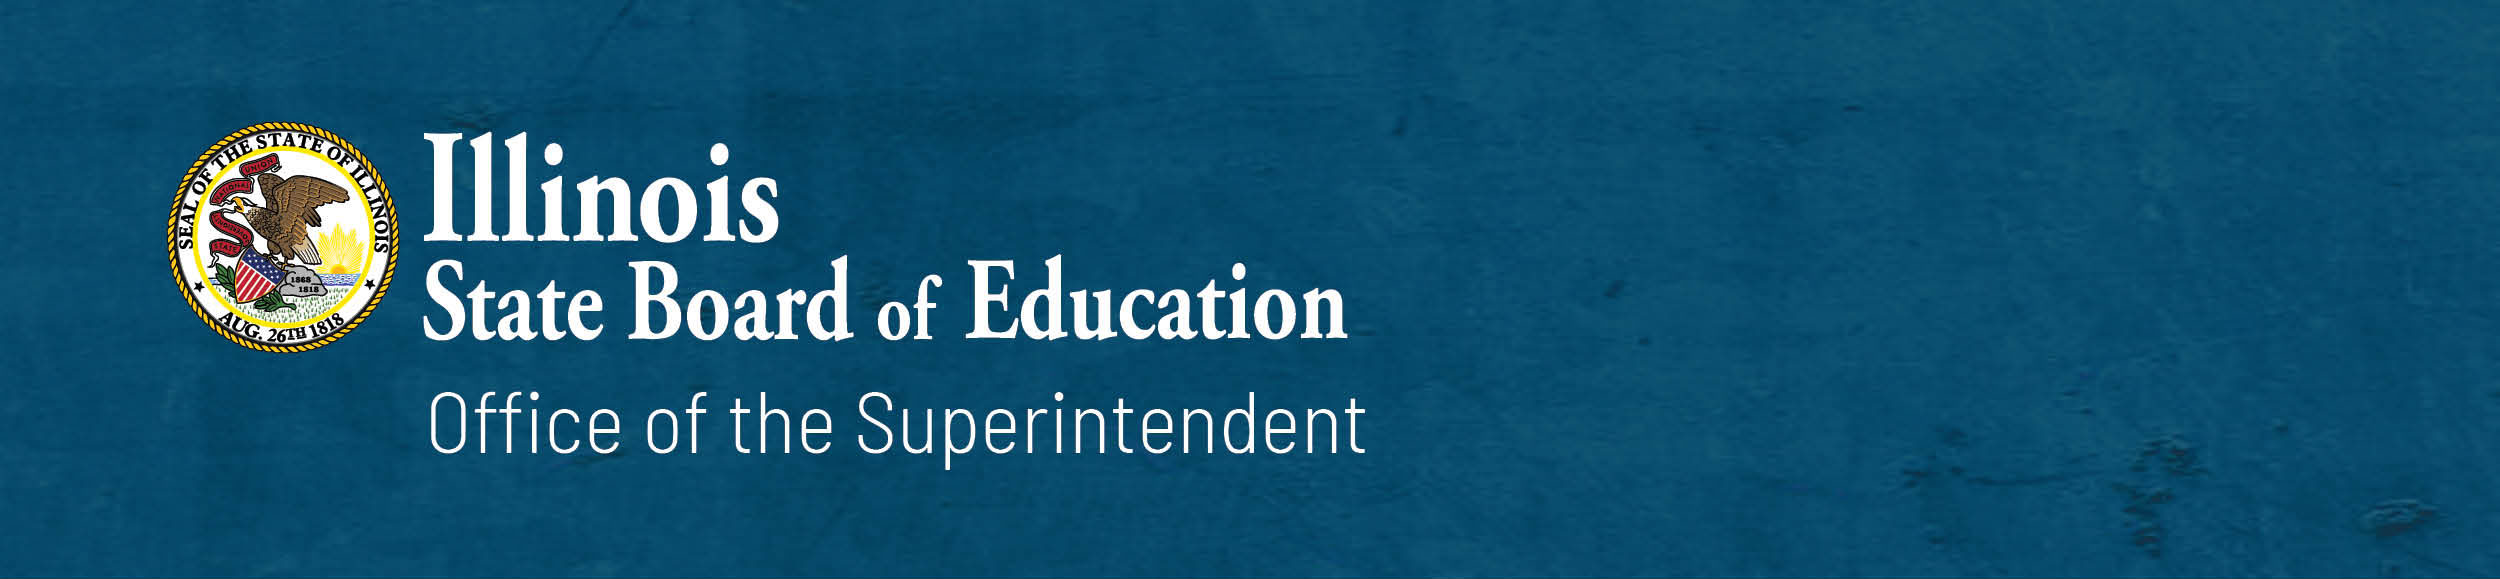 Illinois State Board of Education: Office of the Superintendent